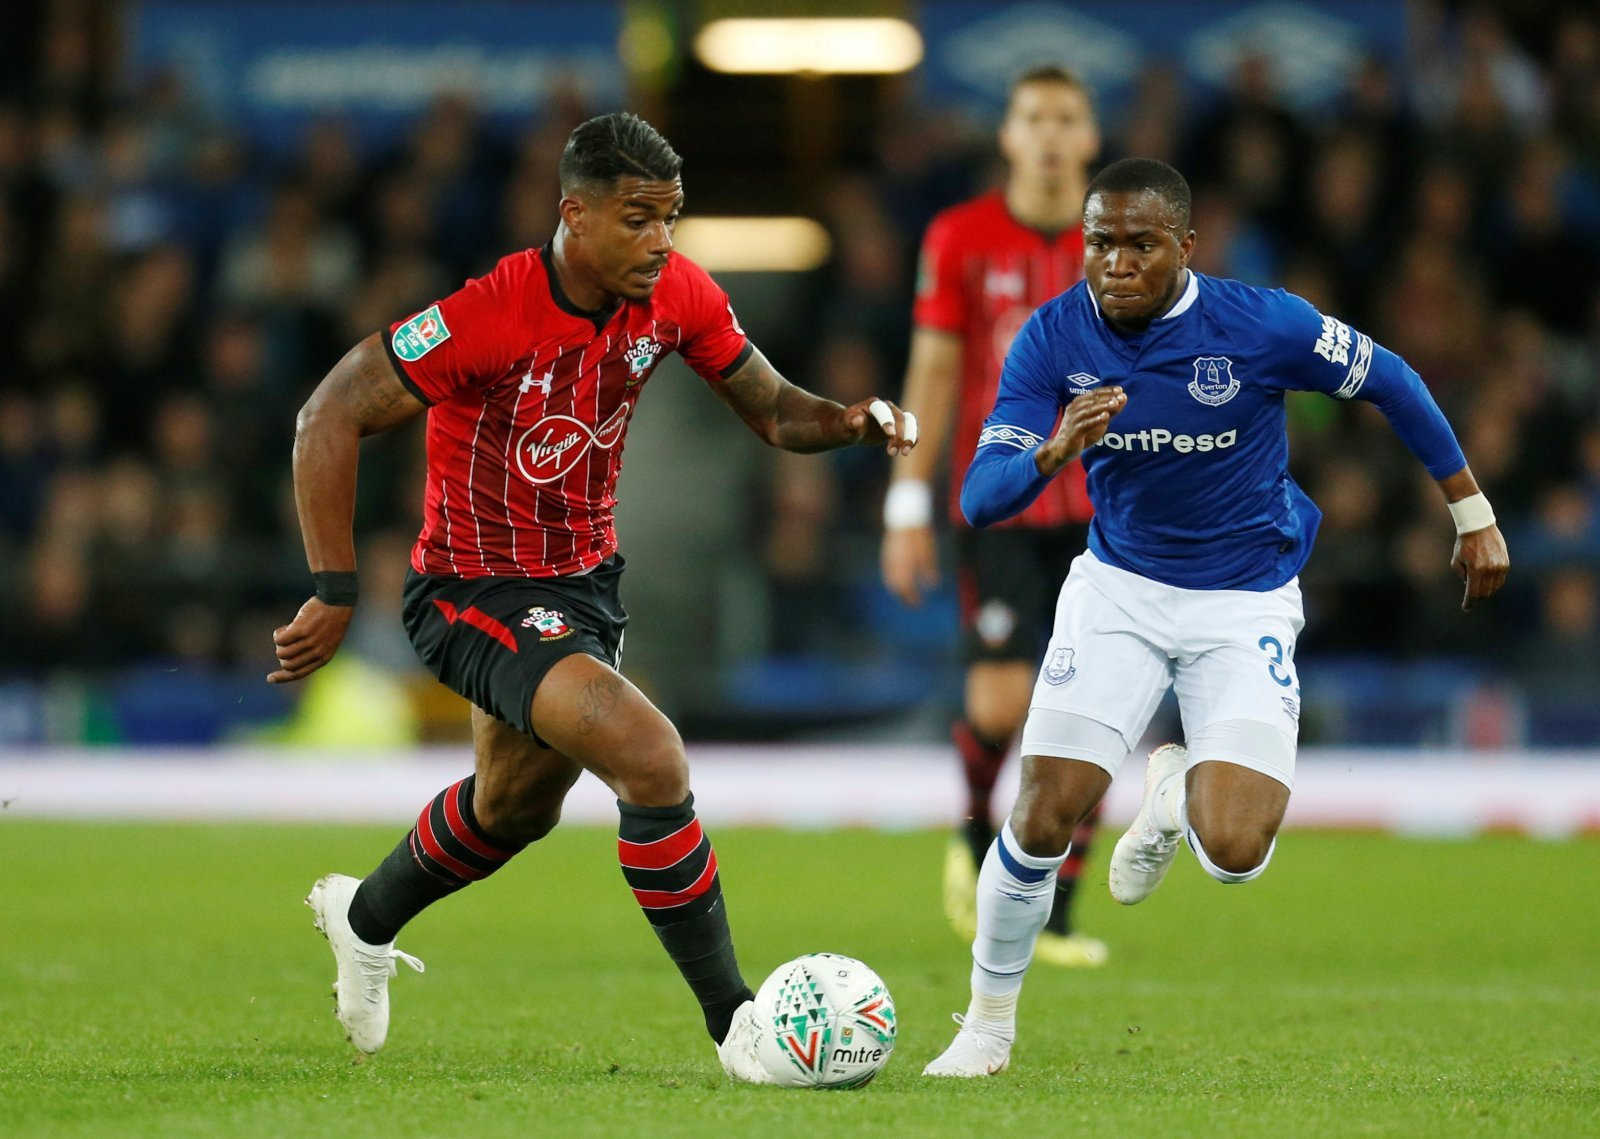 Everton must turn to Lookman before any new signings